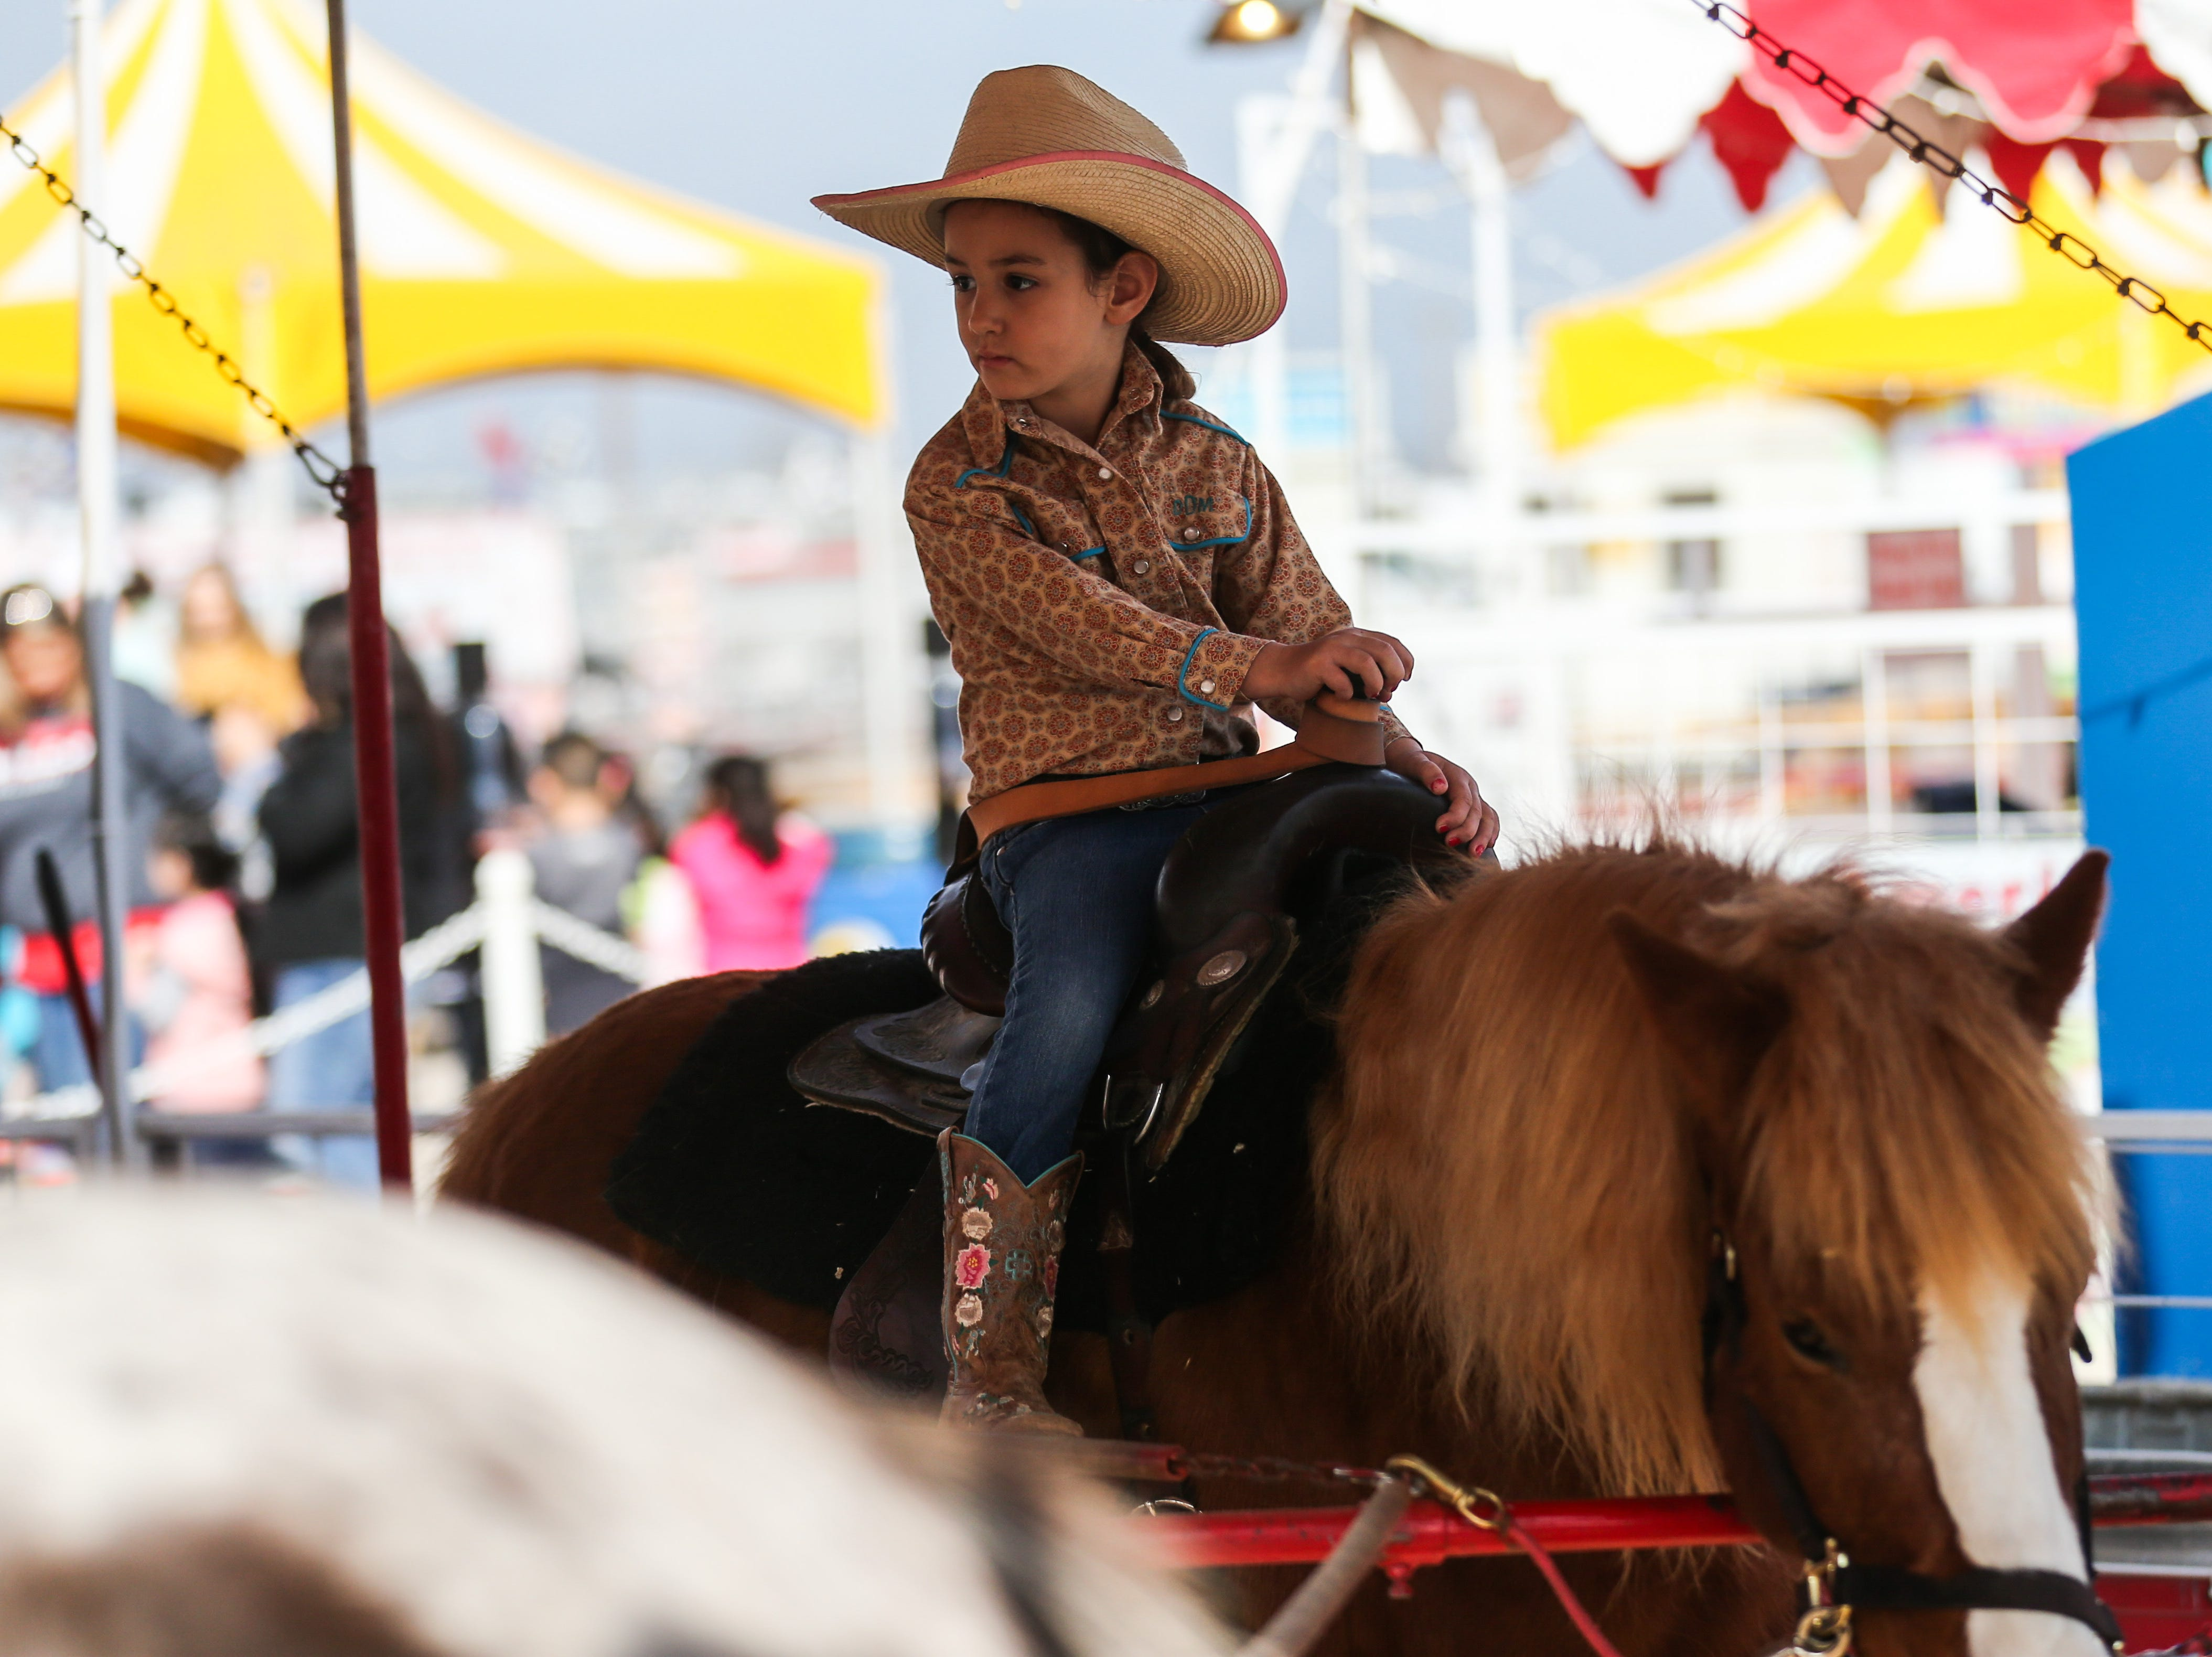 Davie Doyle, 4, from Granbury rides on a pony at the San Angelo Stock Show & Rodeo Tuesday, Feb. 5, 2019, at the San Angelo Fairgrounds.